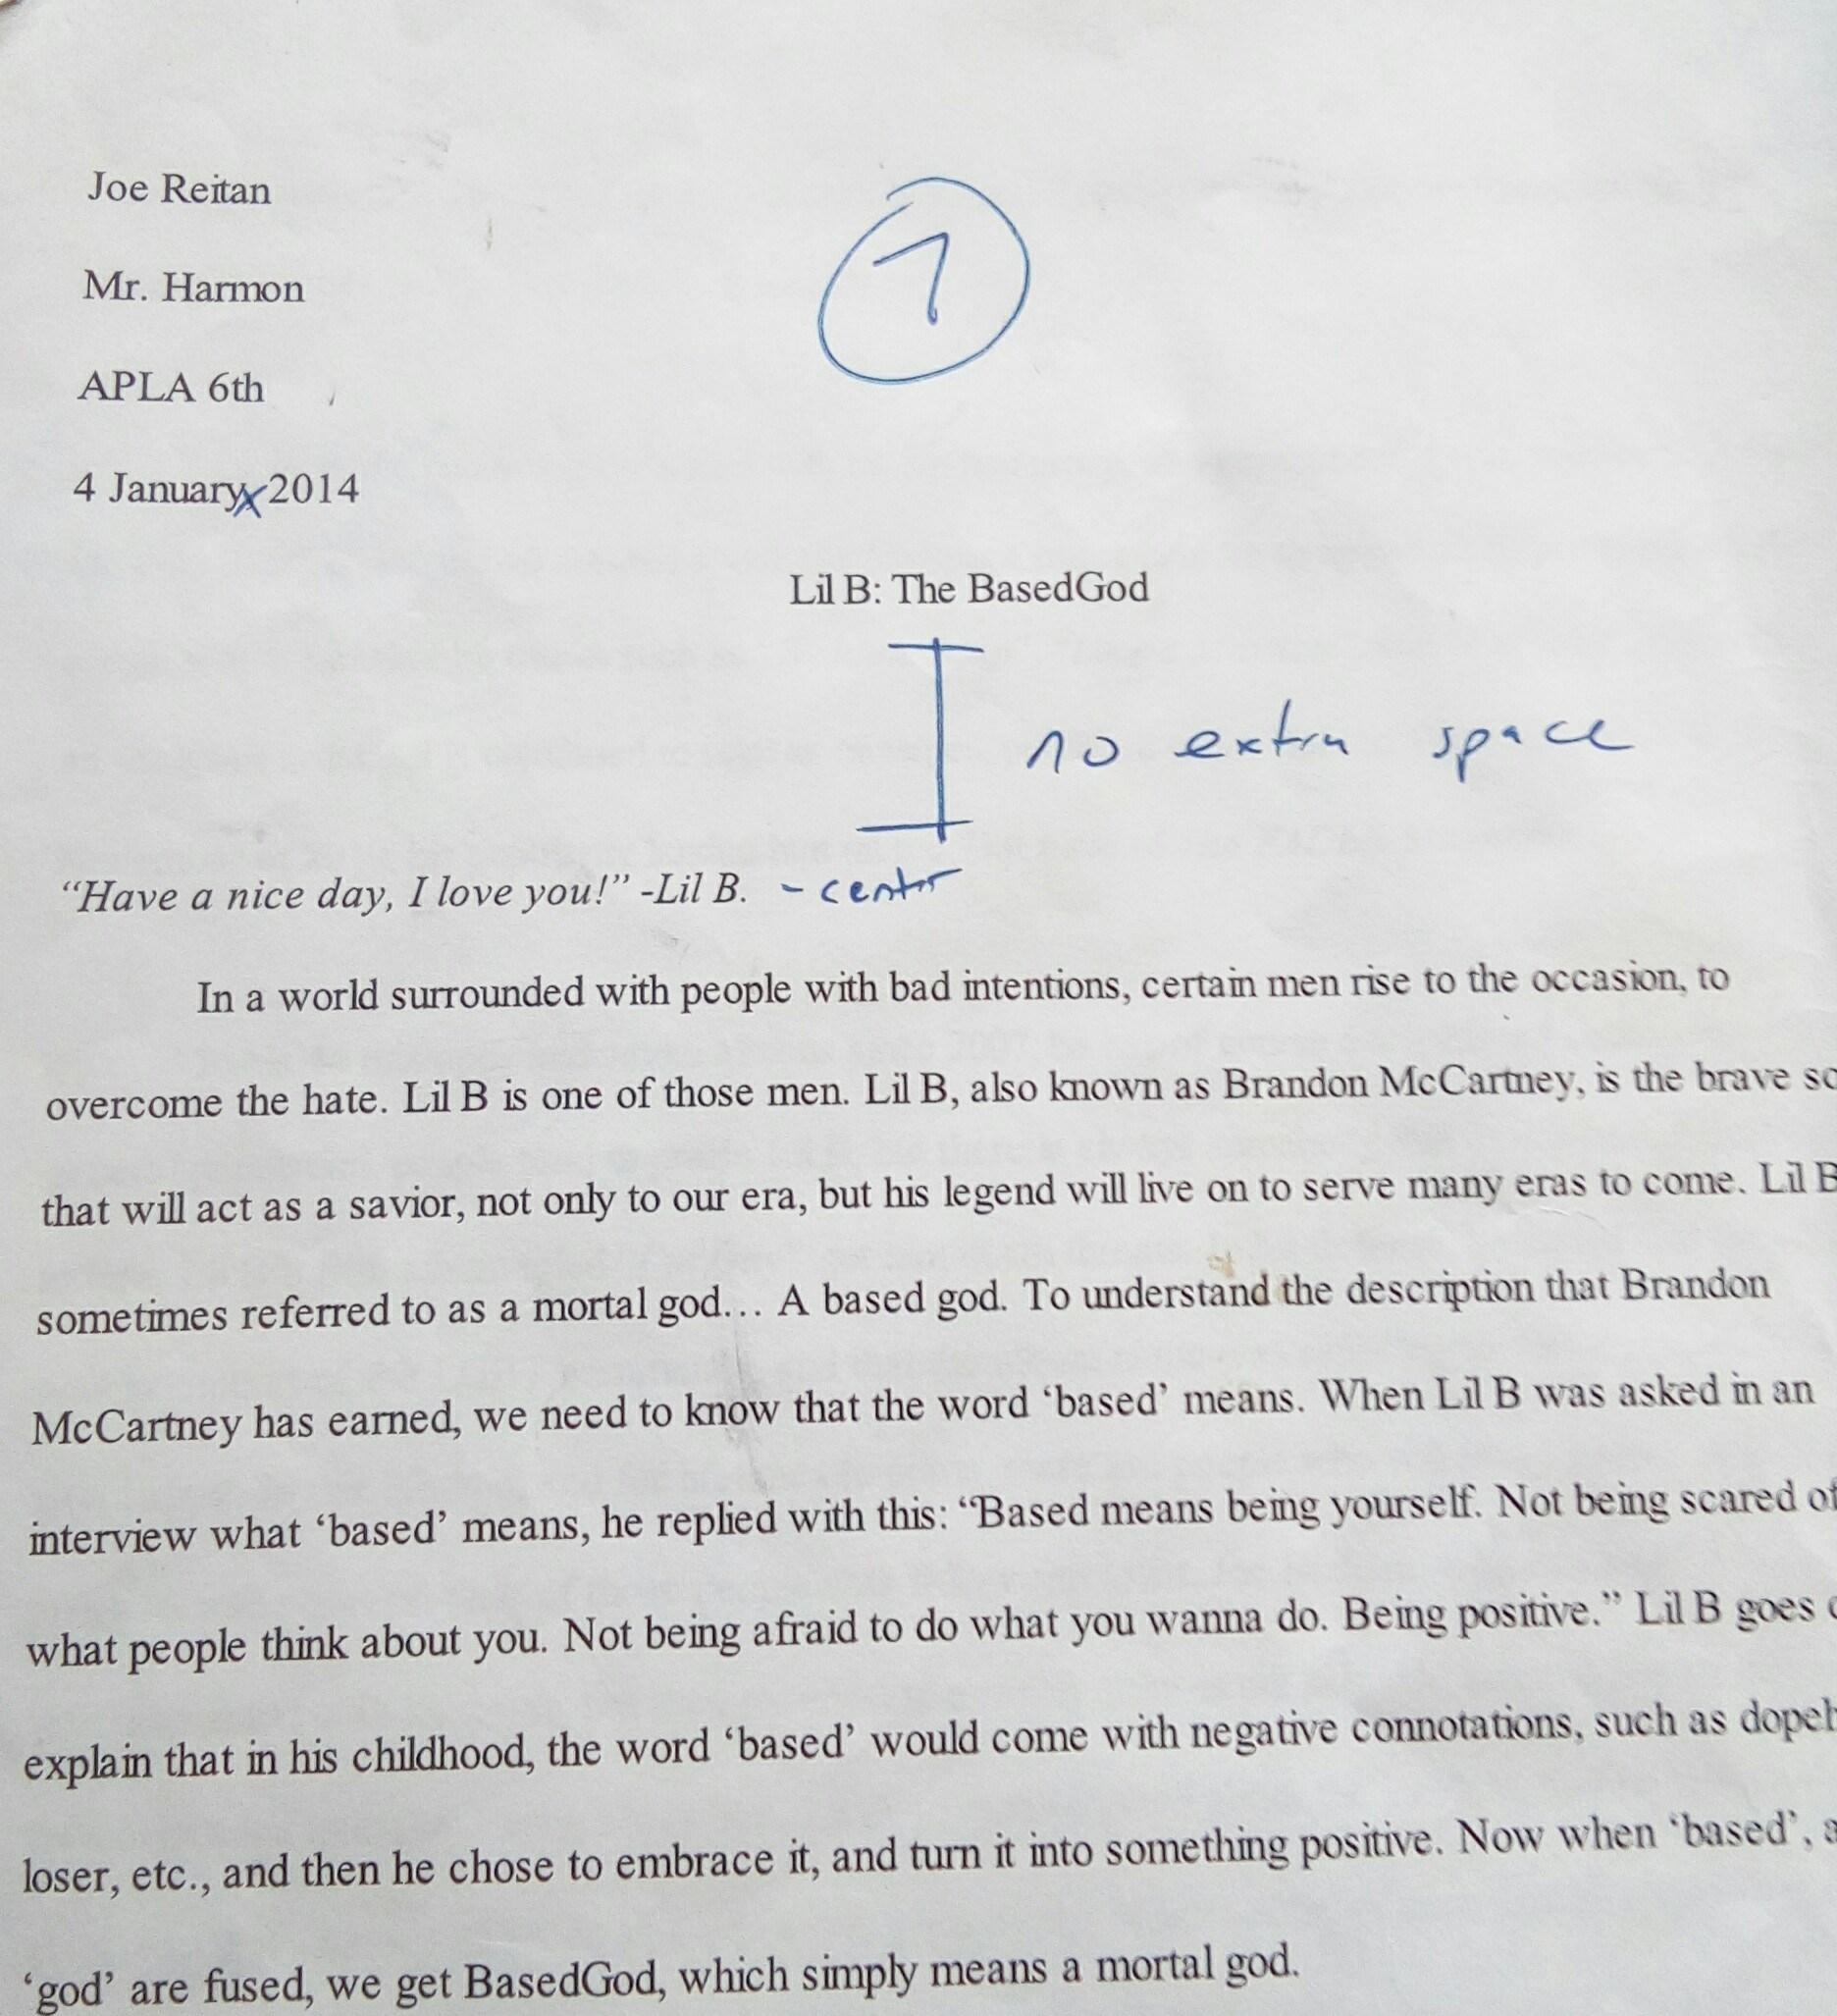 Romeo And Juliet Essay Thesis Lil B The Basedgod Revisiting A High School Ap Essay From  Health Essay Example also College Essay Papers Lil B The Basedgod Revisiting A High School Ap Essay From   Emcee Research Essay Proposal Template